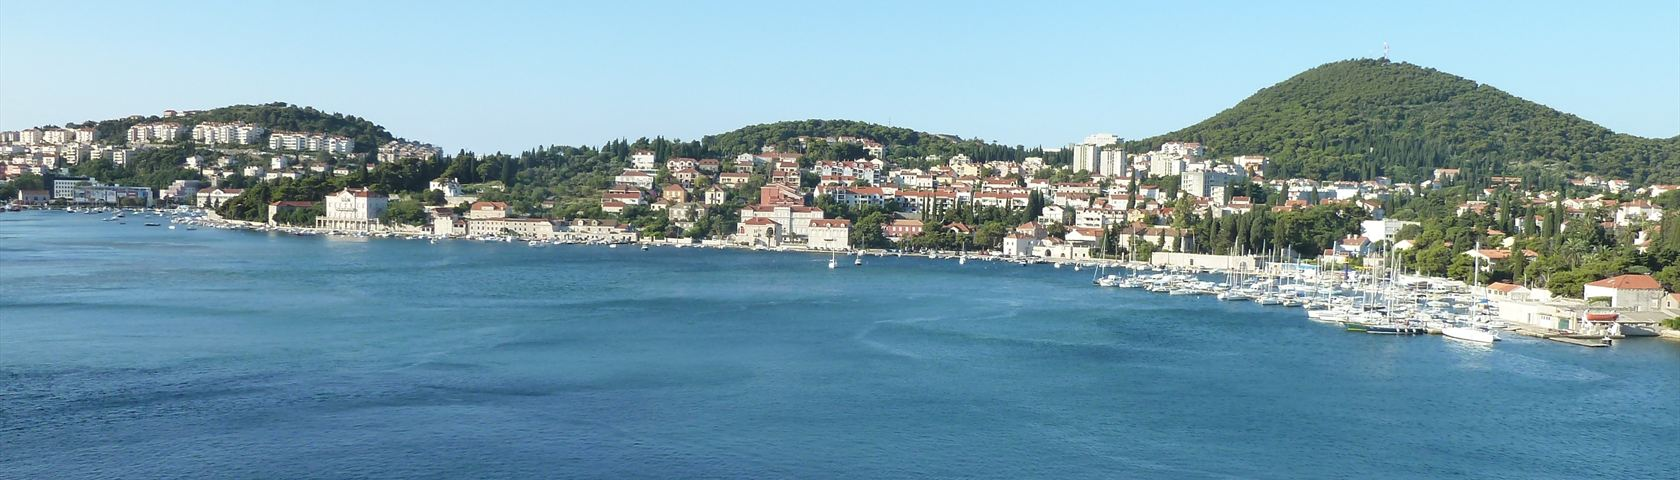 Shores of Dubrovnik